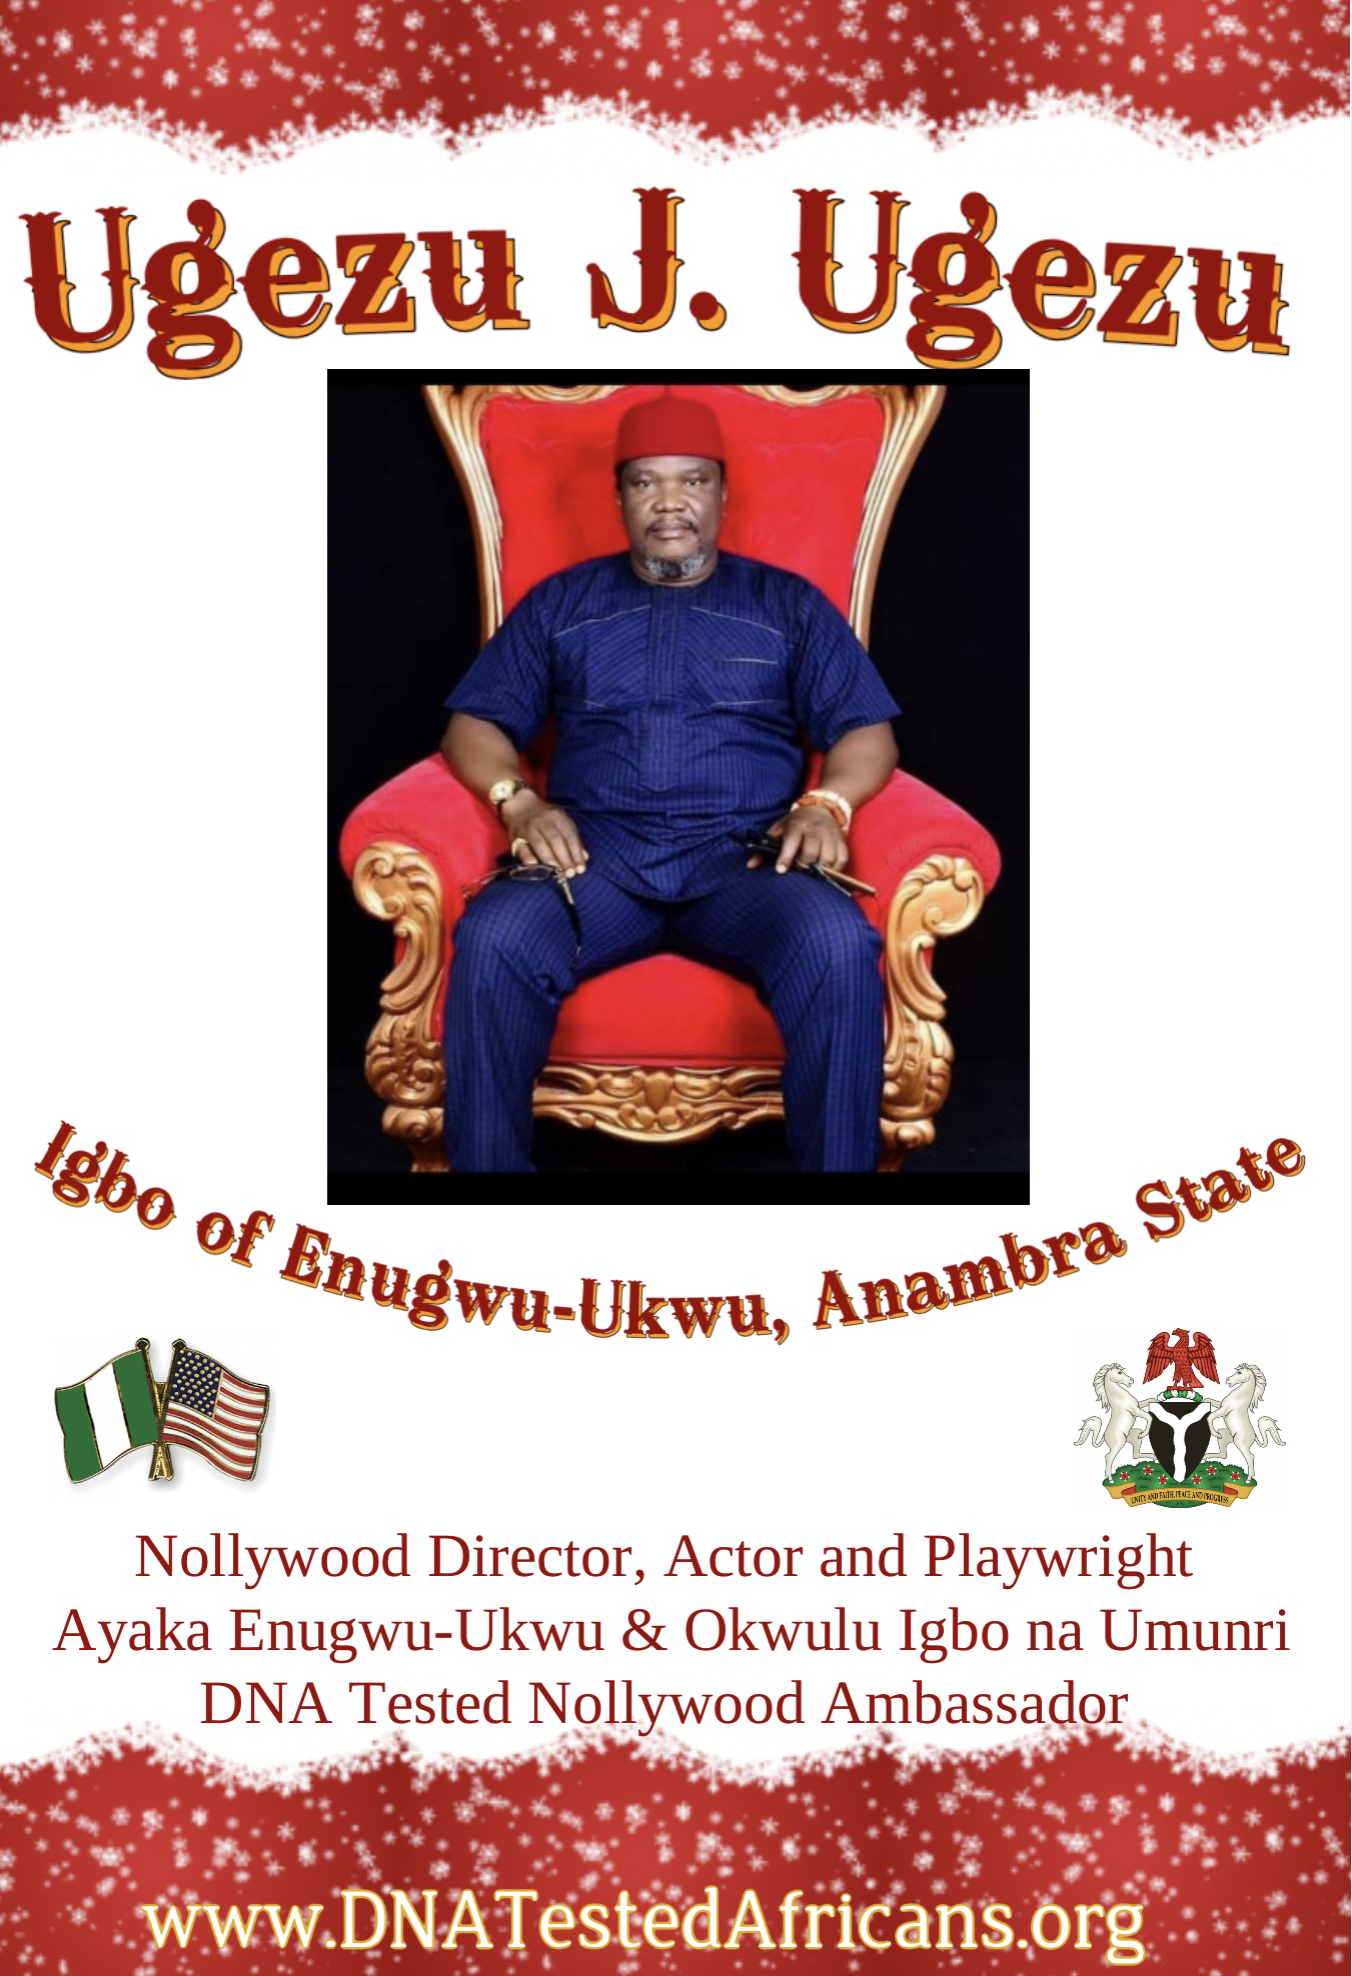 Ugezu J Ugezu of Nollywood